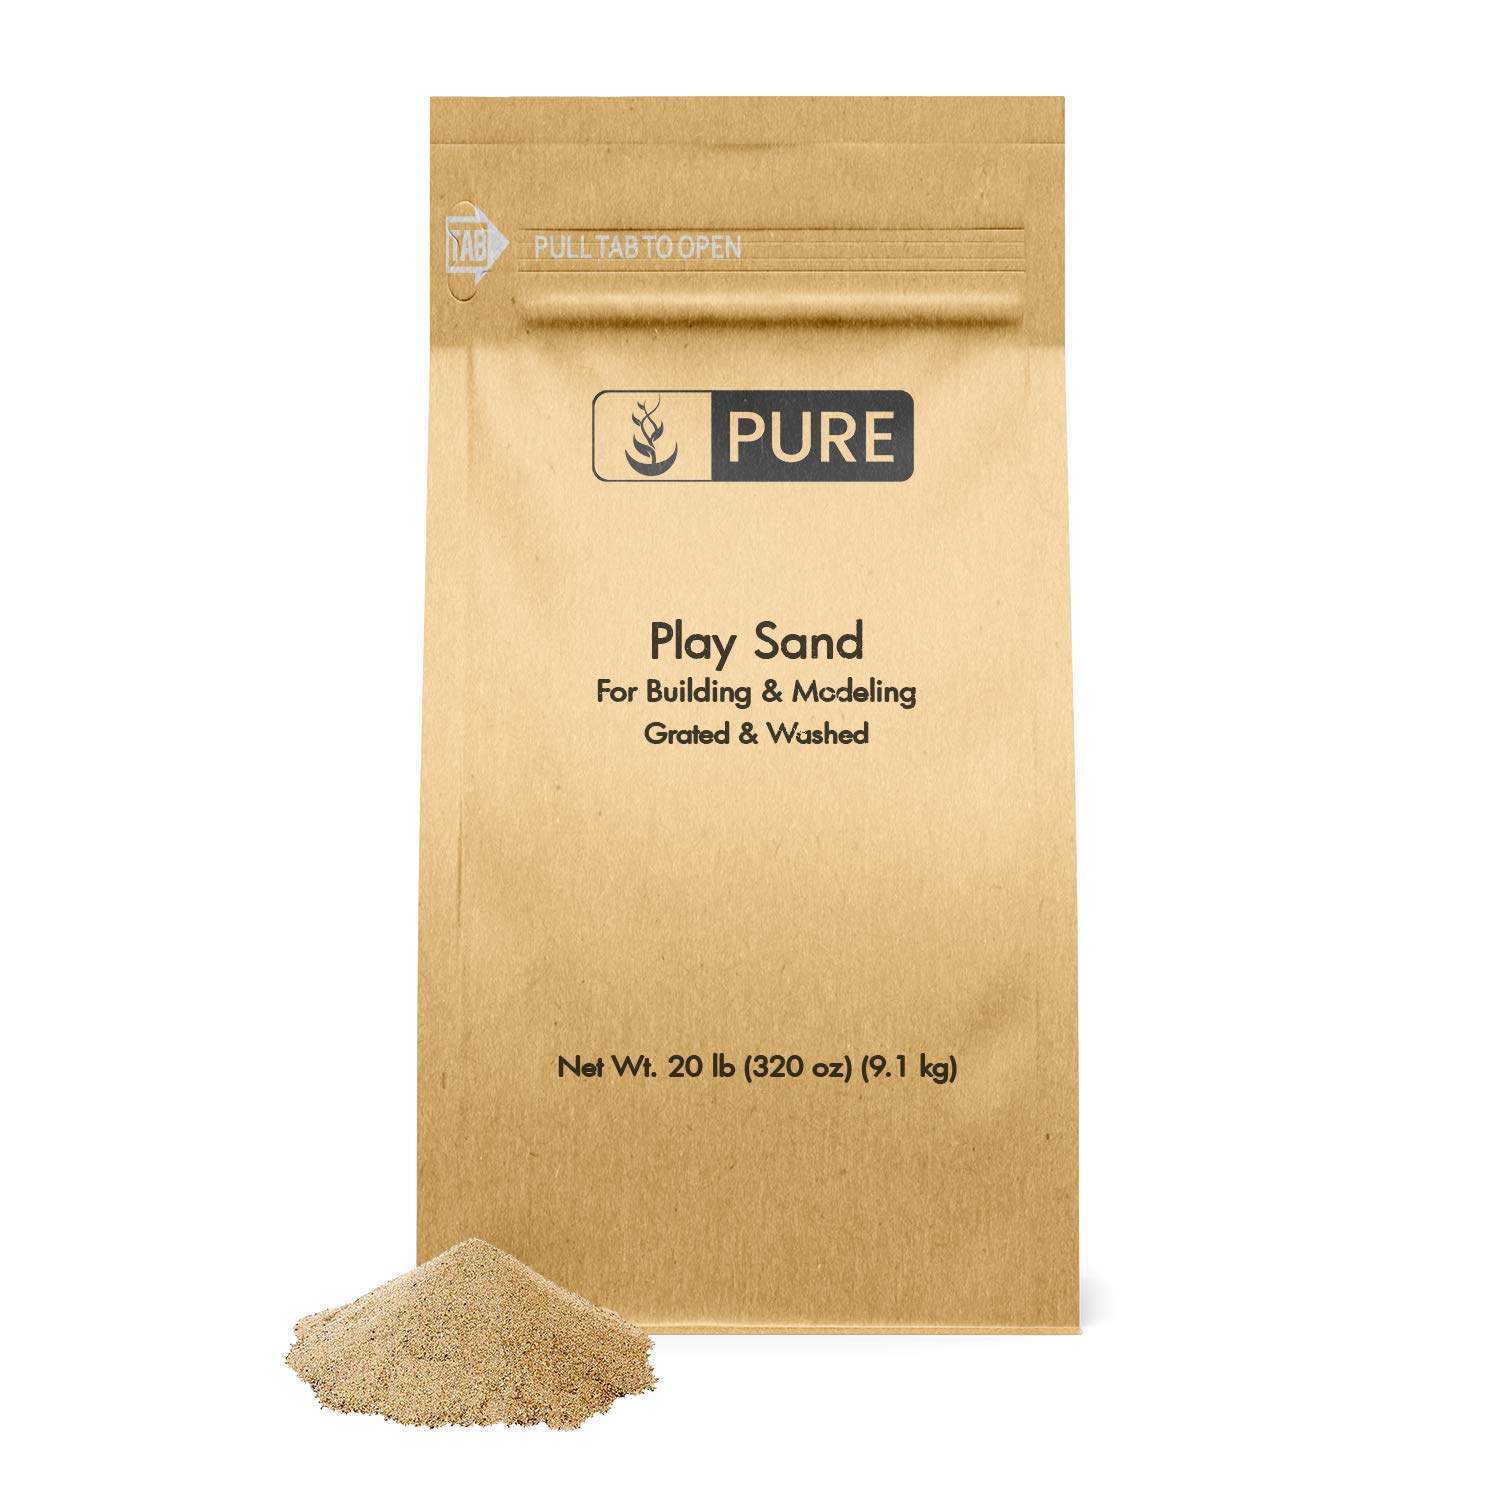 Play Sand (20 lbs) by Pure Organic Ingredients, Eco-Friendly Packaging, Highest Quality, Building & Molding, Promotes Creativity, Sandbox & Play Areas, Indoor/Outdoor